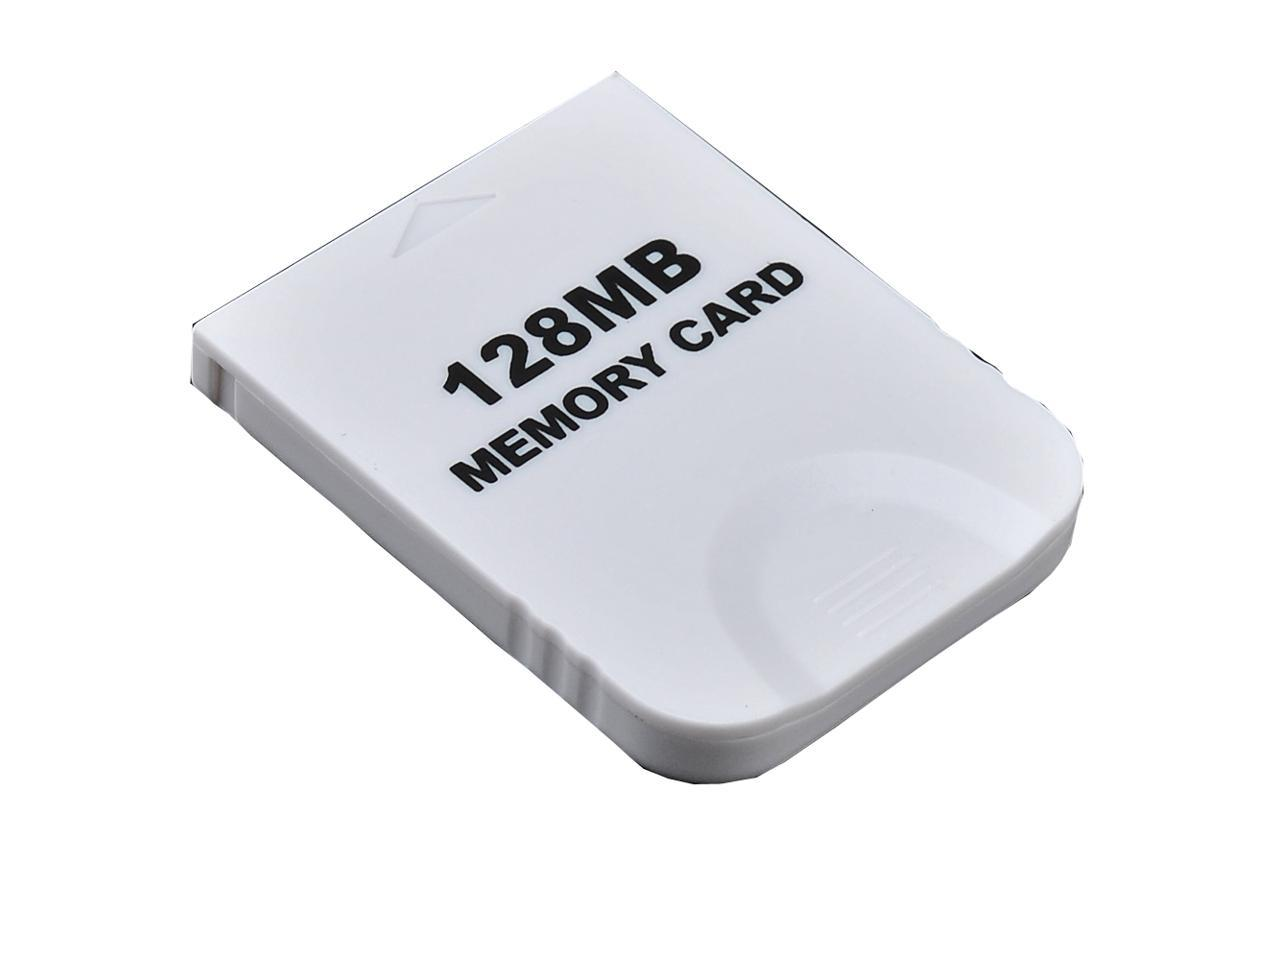 128MB Memory Card for Nintendo GameCube / Wii